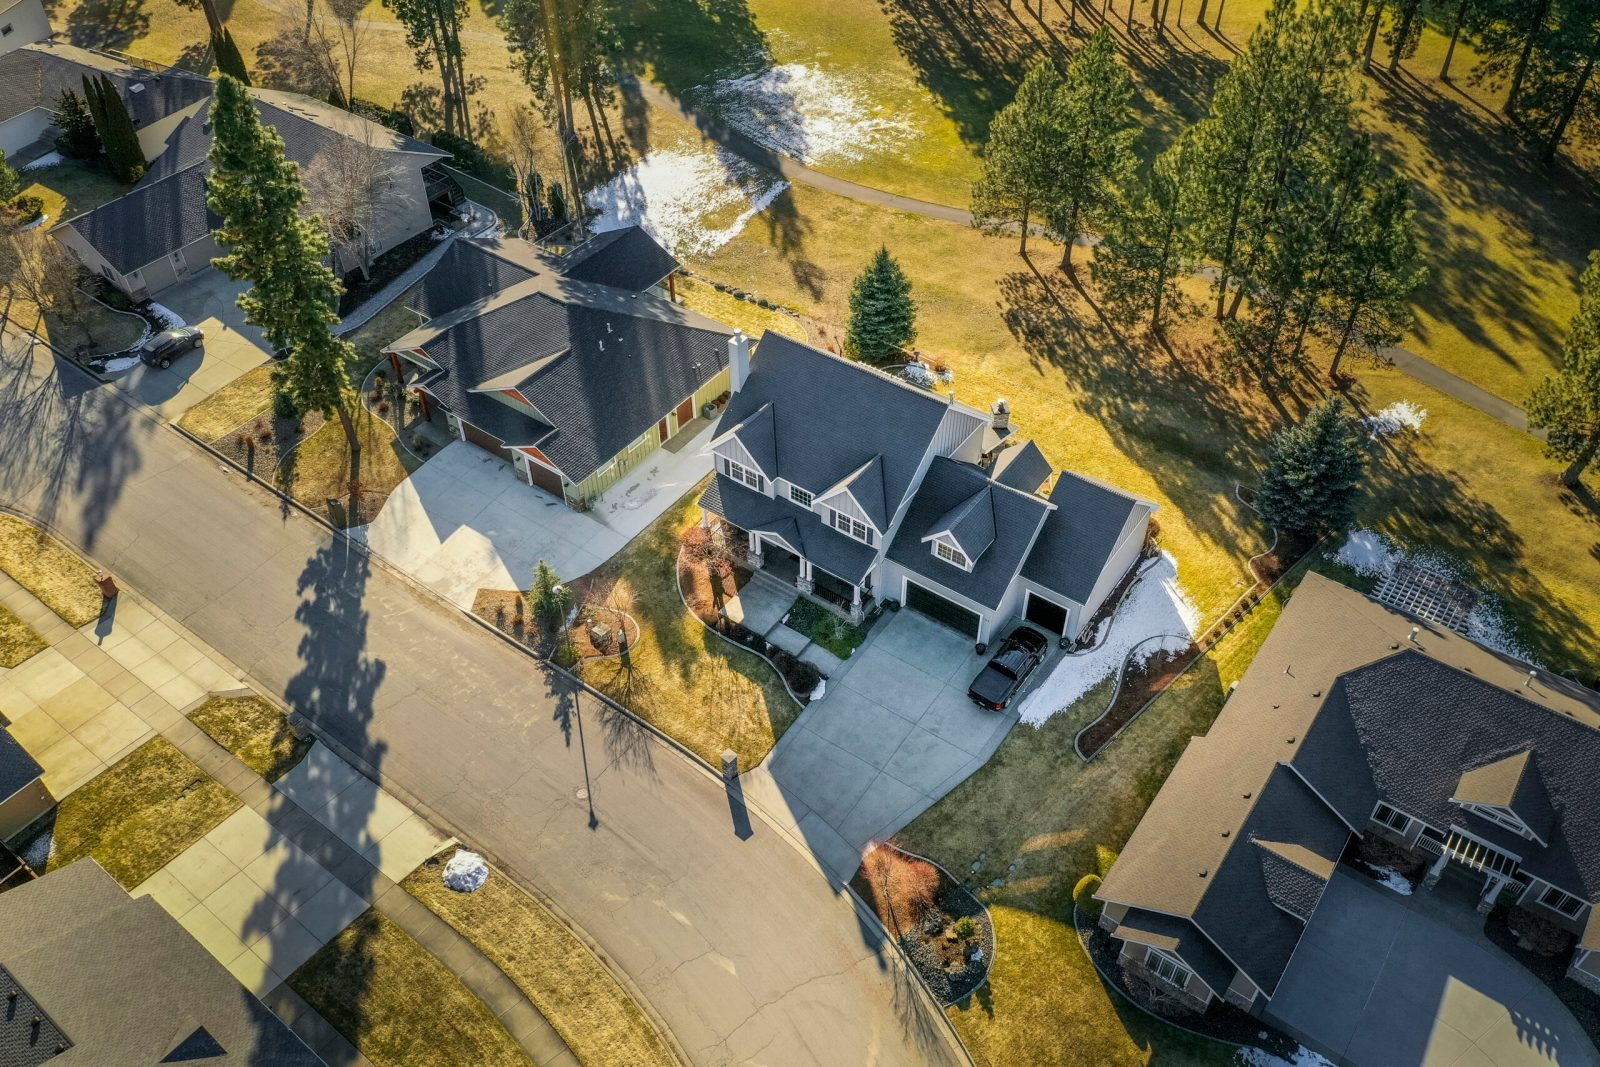 Real Estate Video Tour Production in Spokane - Drone Aerial